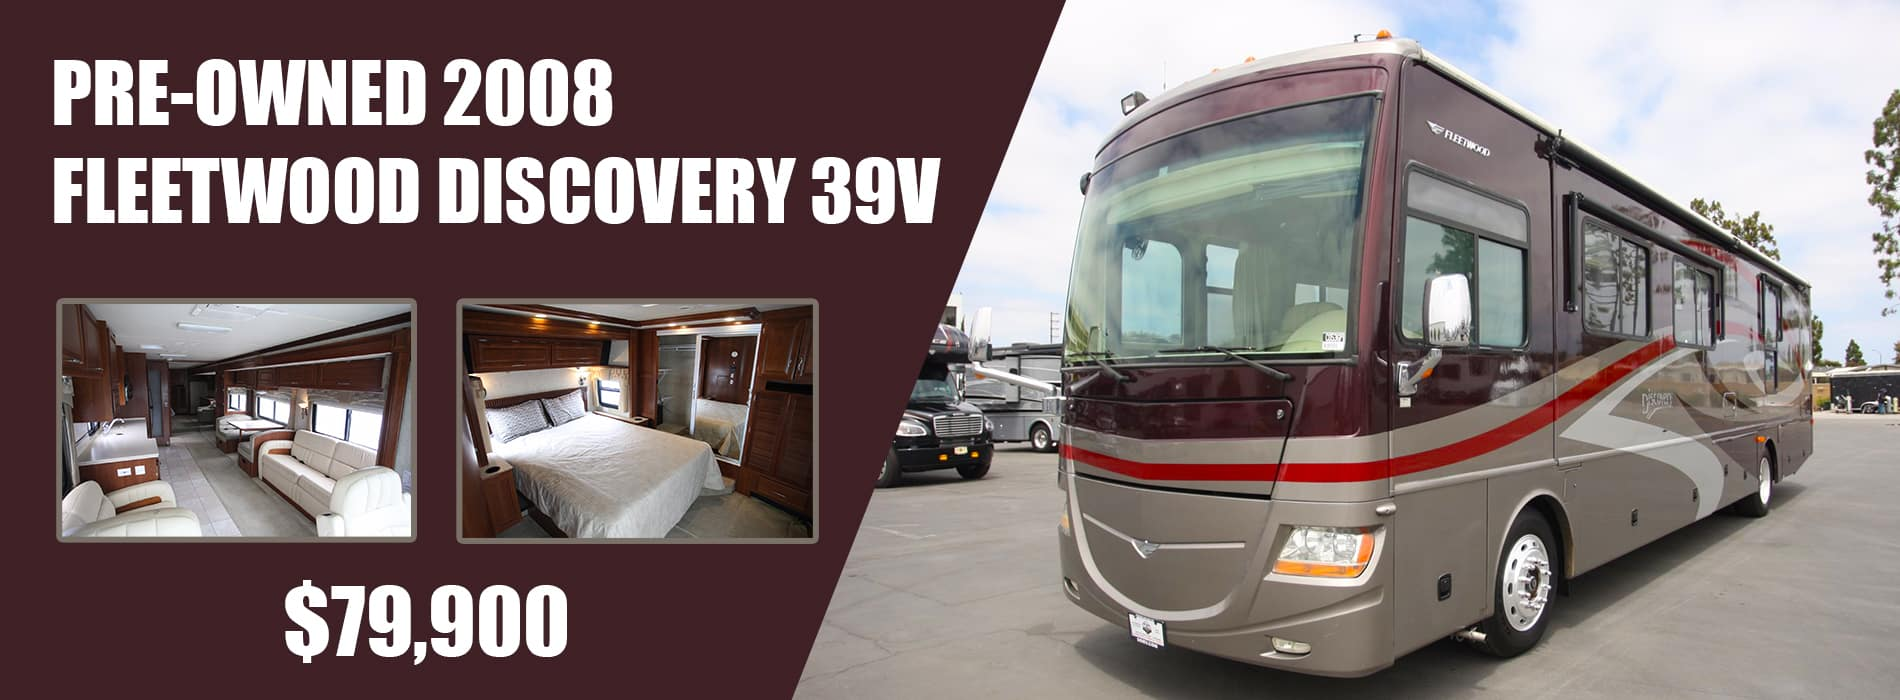 PRE-OWNED 2008 FLEETWOOD DISCOVERY 39V 11 2020